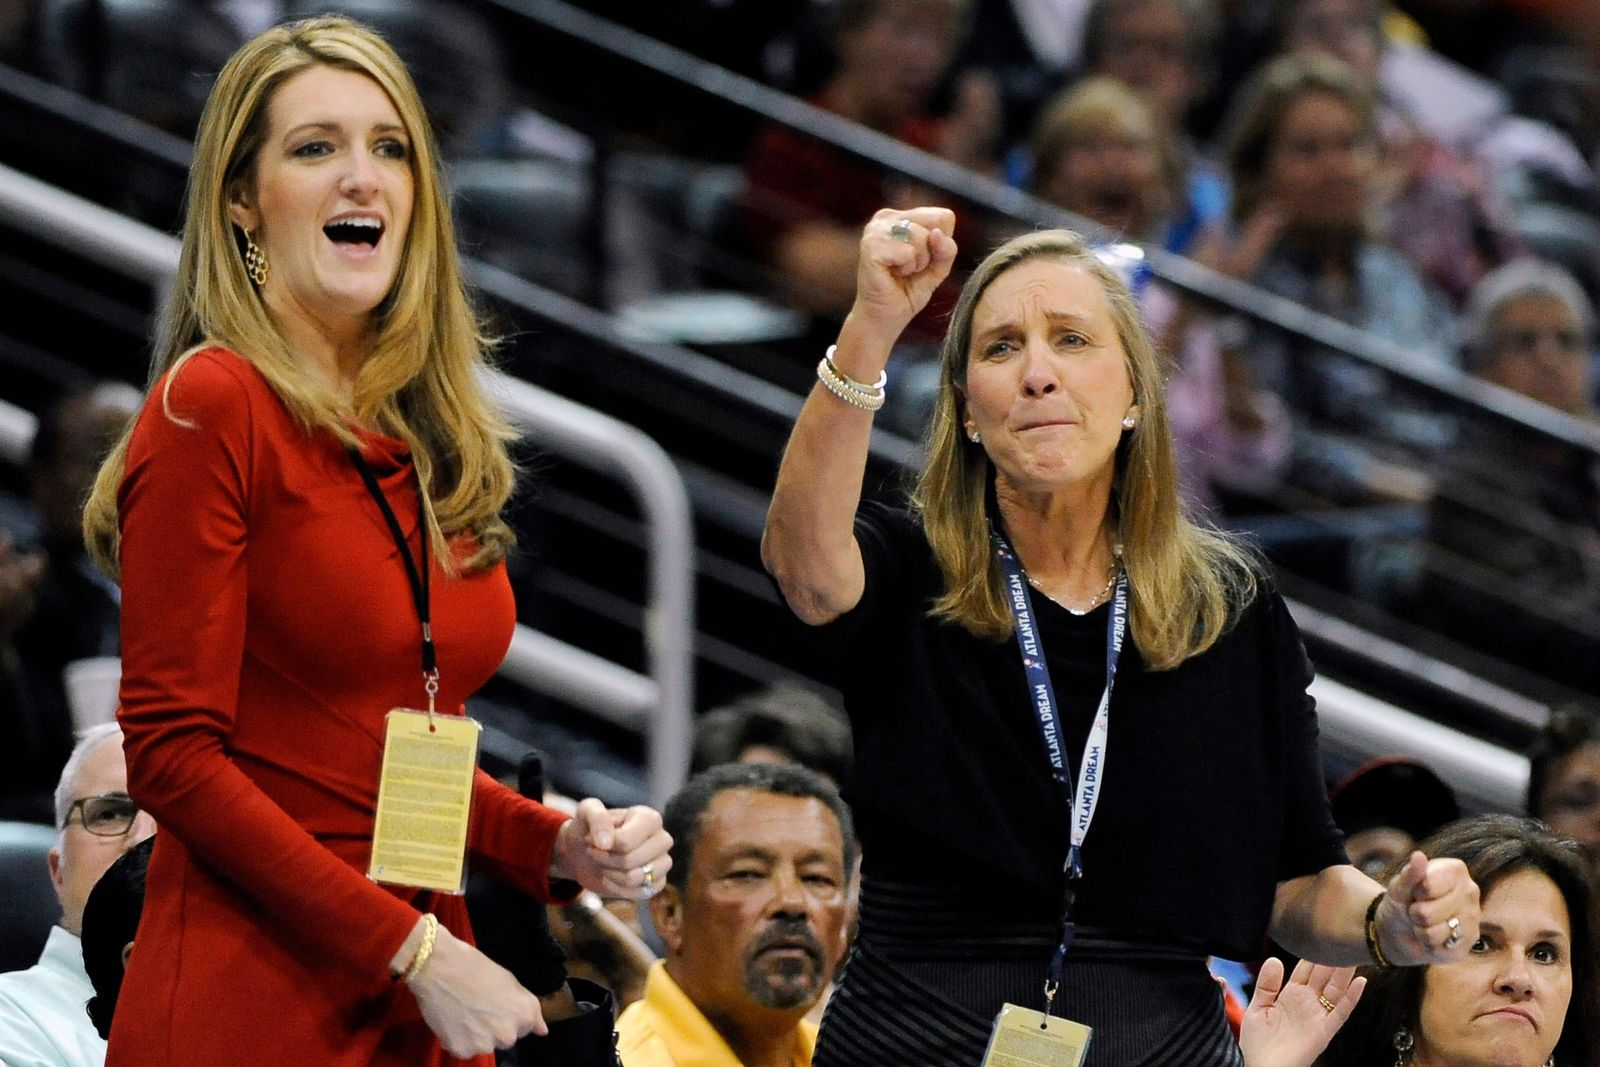 FILE-In this Tuesday, Sept. 6, 2011 file photo, Mary Brock, right, and Kelly Loeffler cheer from their courtside seats as the Atlanta Dream basketball team plays in the second half of their WNBA basketball game, in Atlanta. (AP Photo/David Tulis, File)